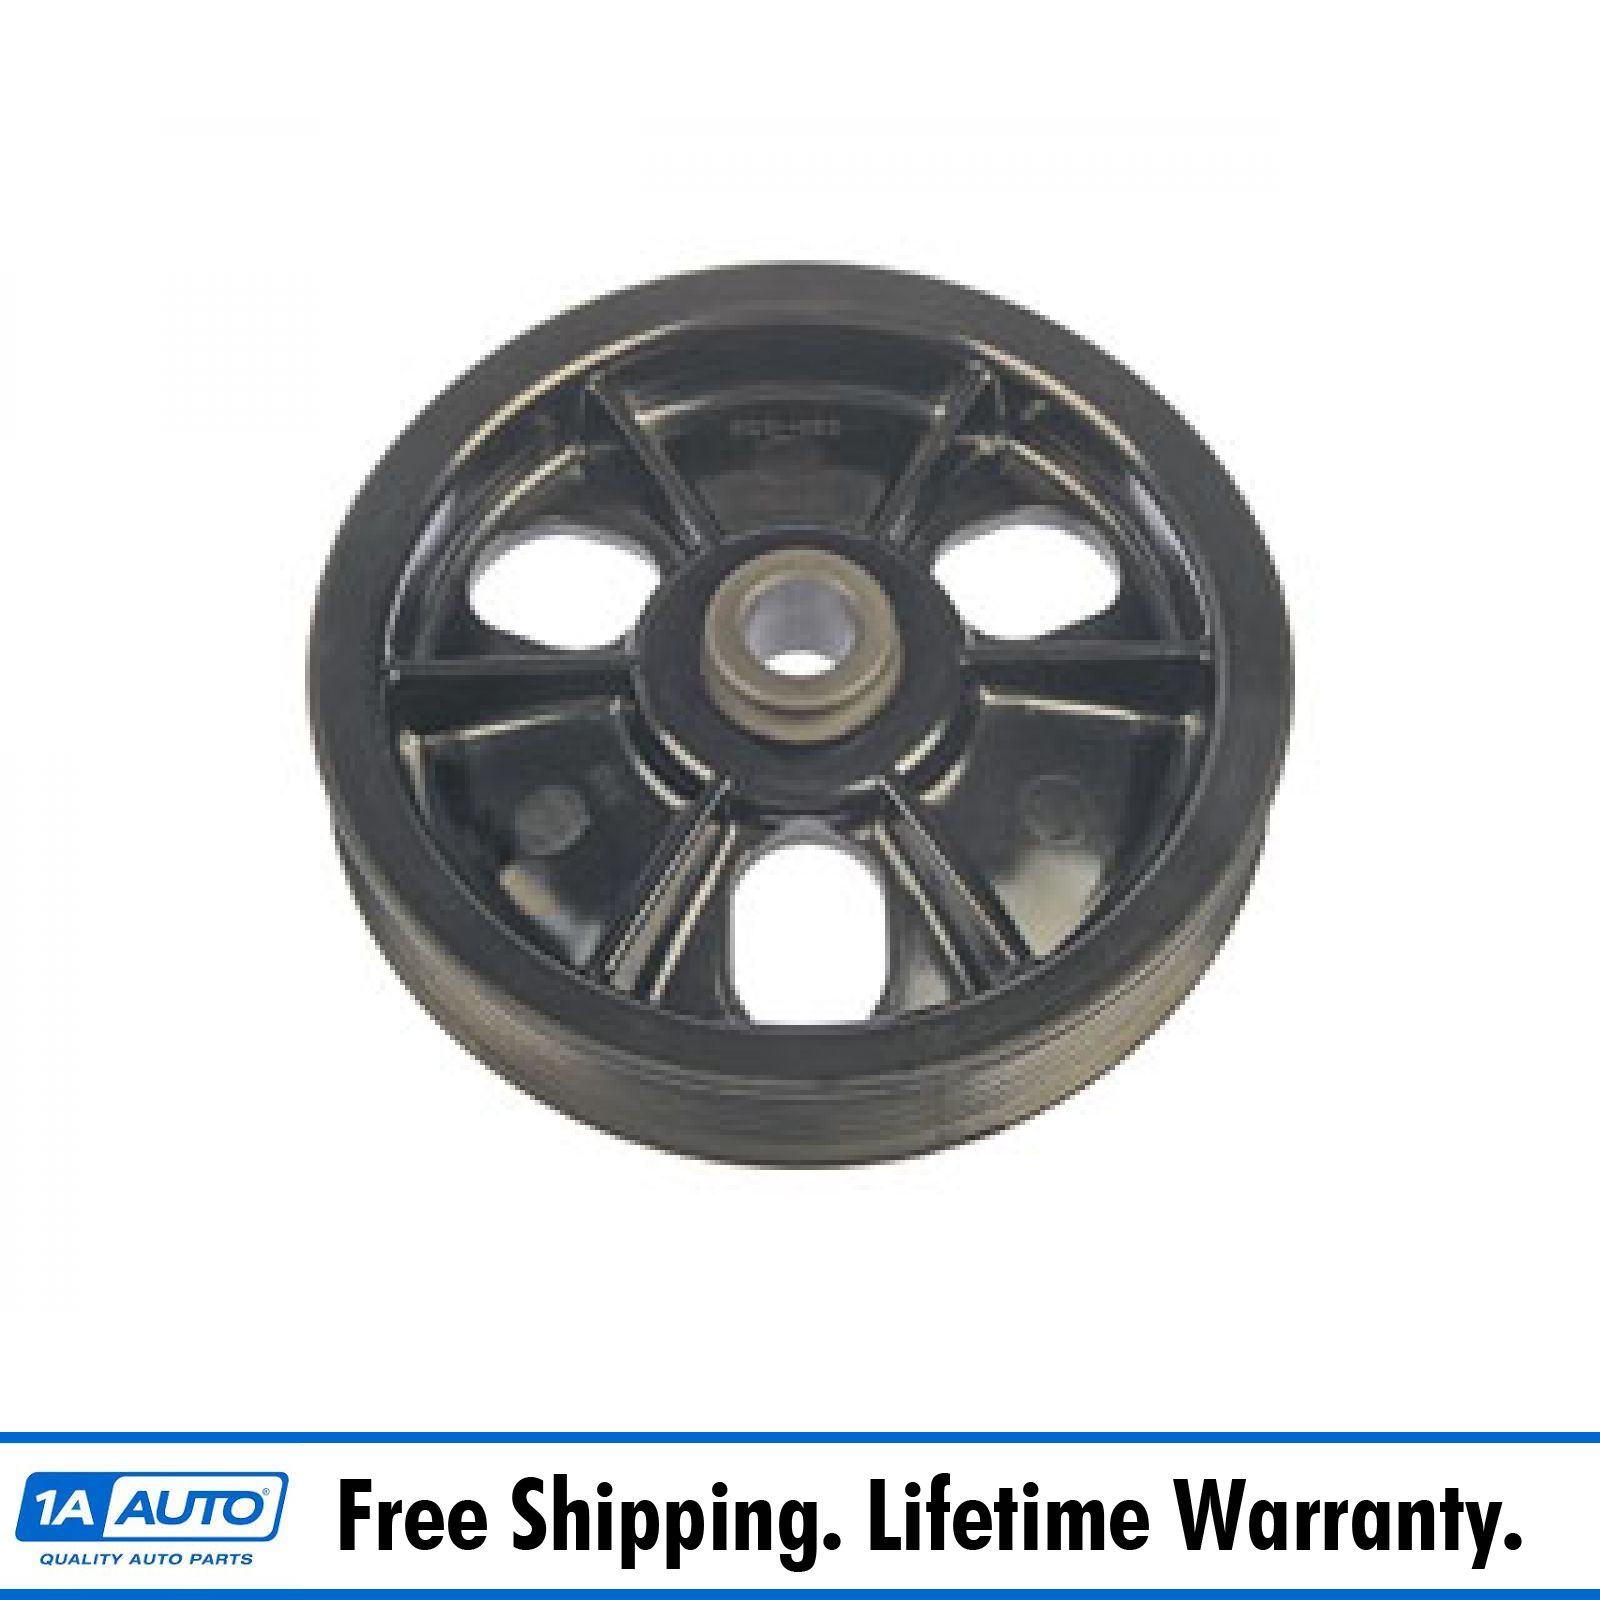 Details about Power Steering Pump Pulley for Dodge Grand Caravan Voyager  Town & Country V6